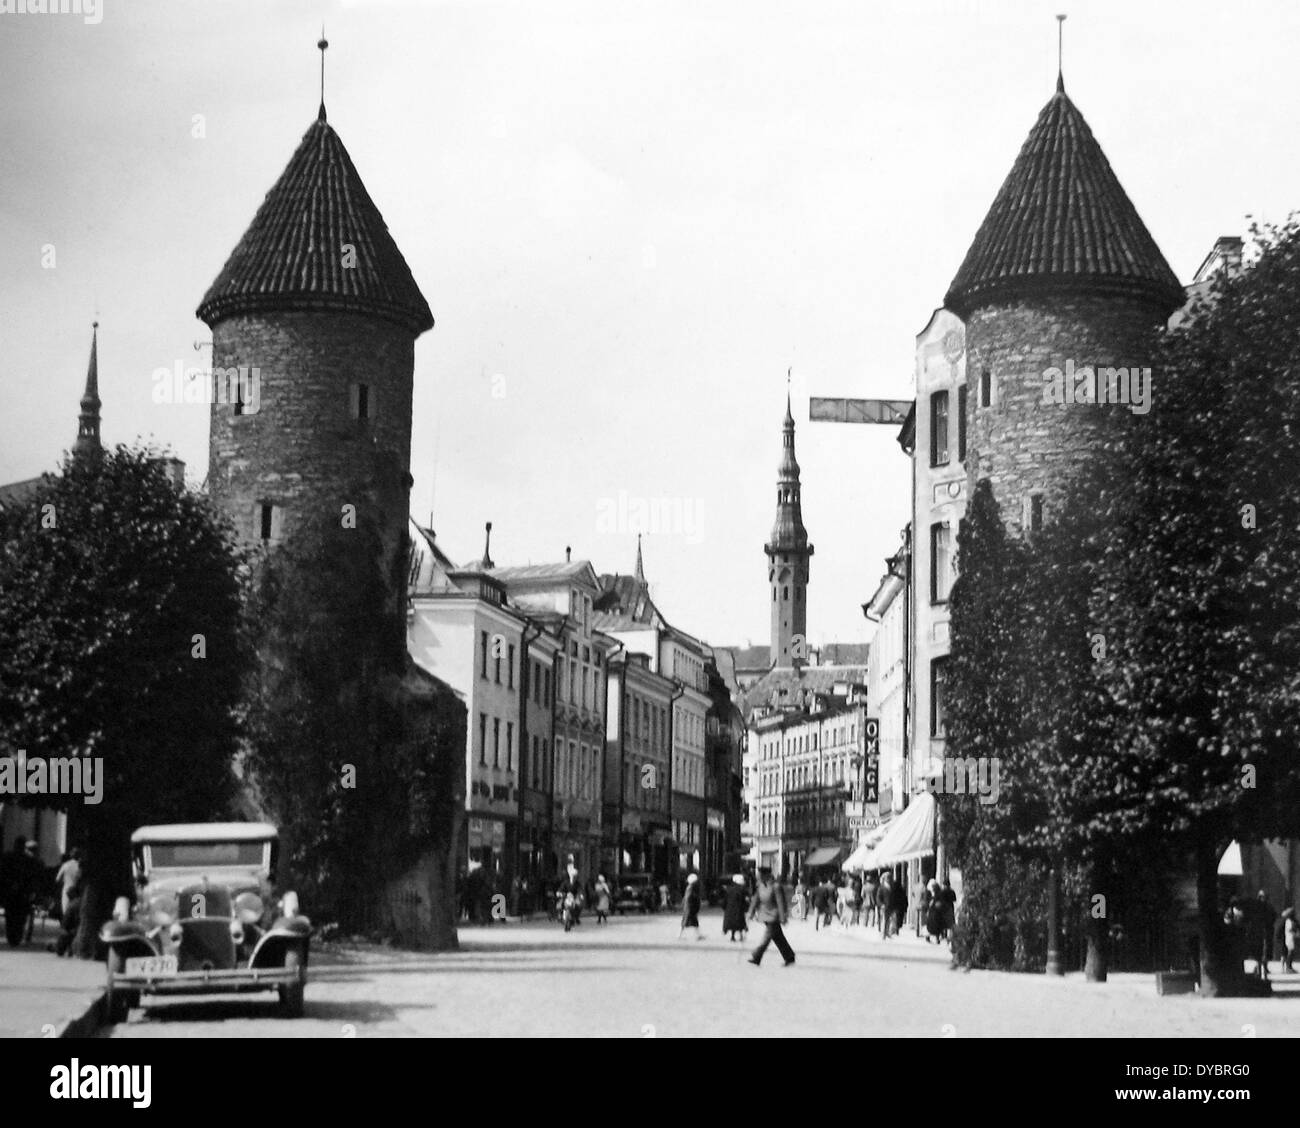 Tallinn Estonia probably 1930s - Stock Image